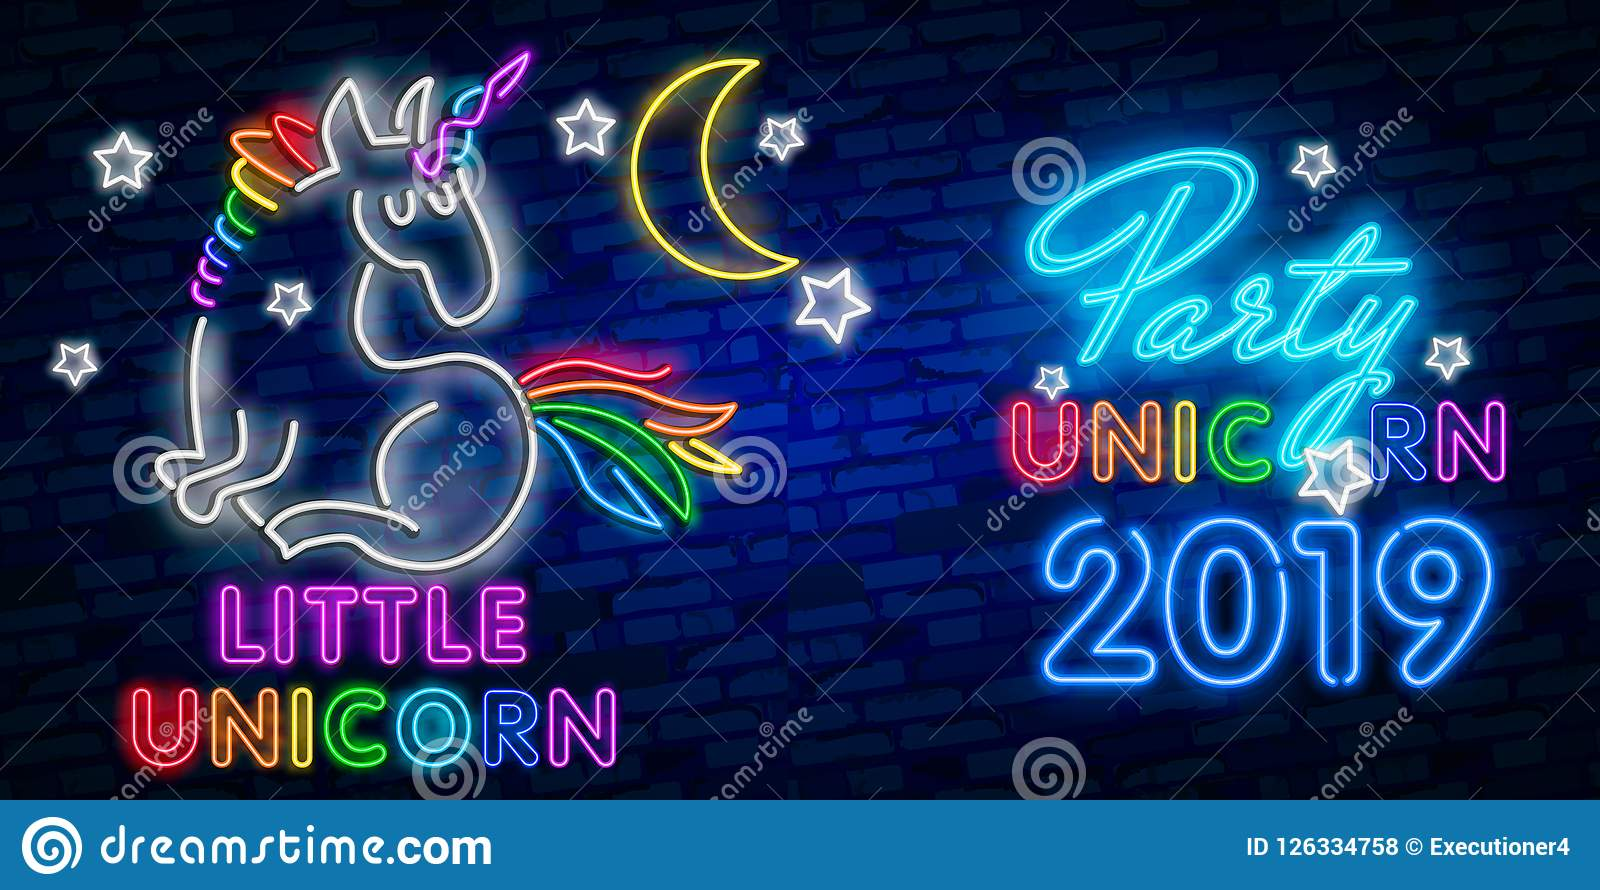 Beauty Neon Sign Of Unicorn  Neon Emblem, Bright Banner  Advertising